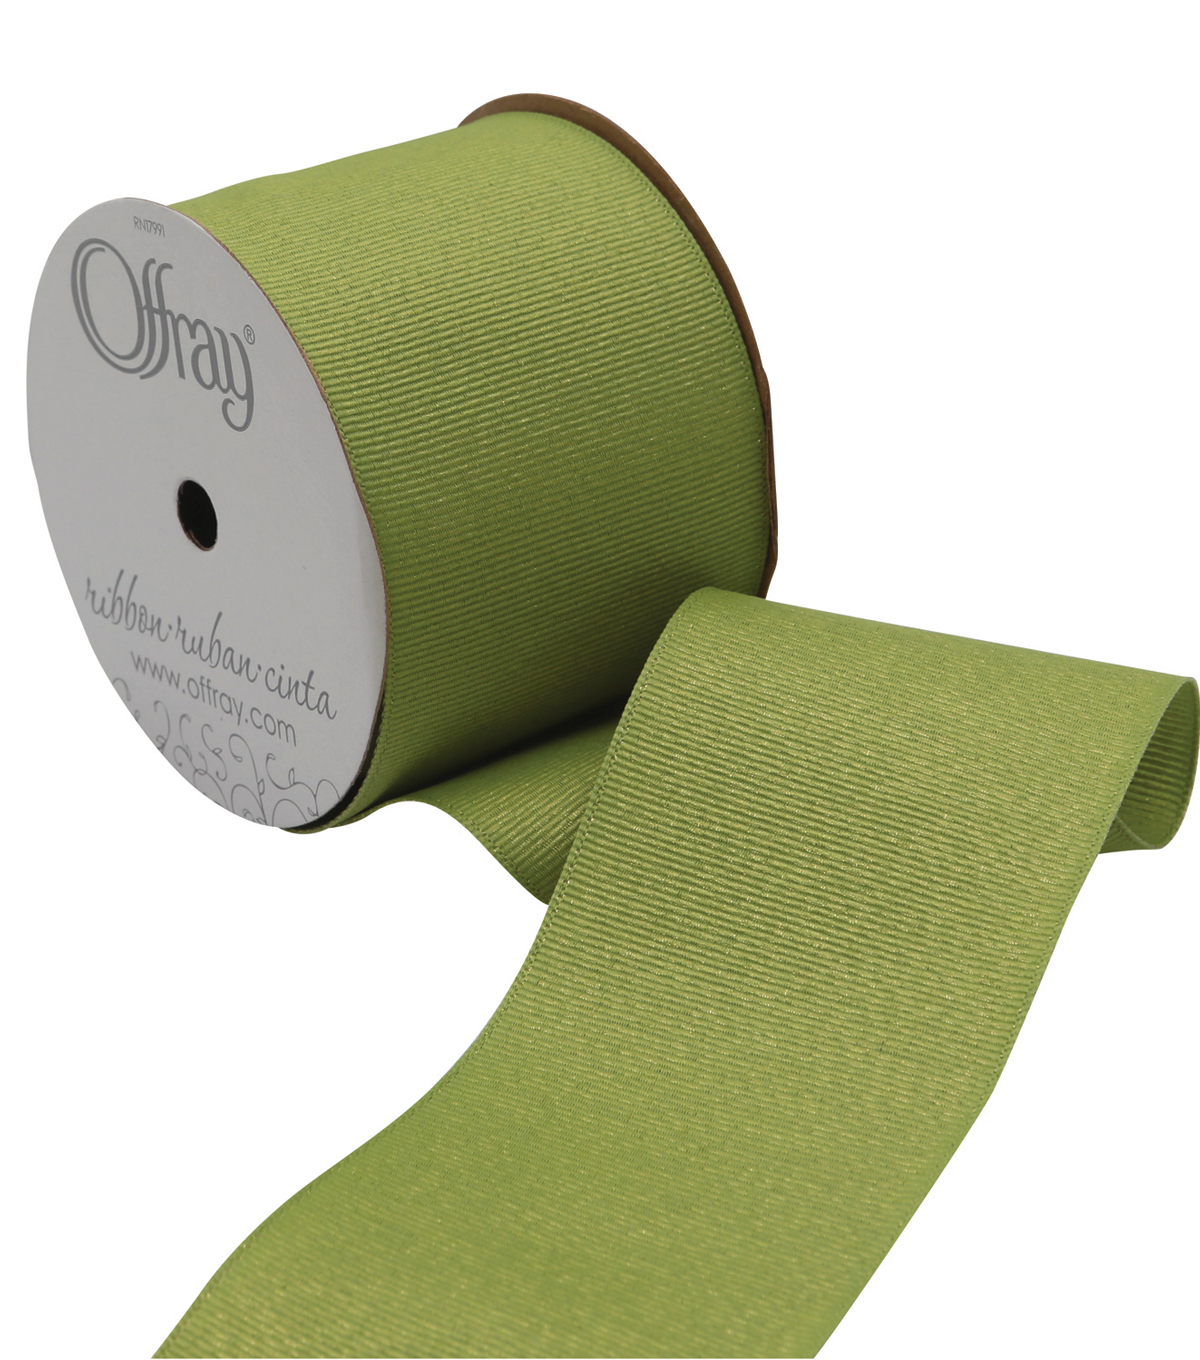 2 And One Qtr Grosgrain Glitz Lime Juice Ribbon